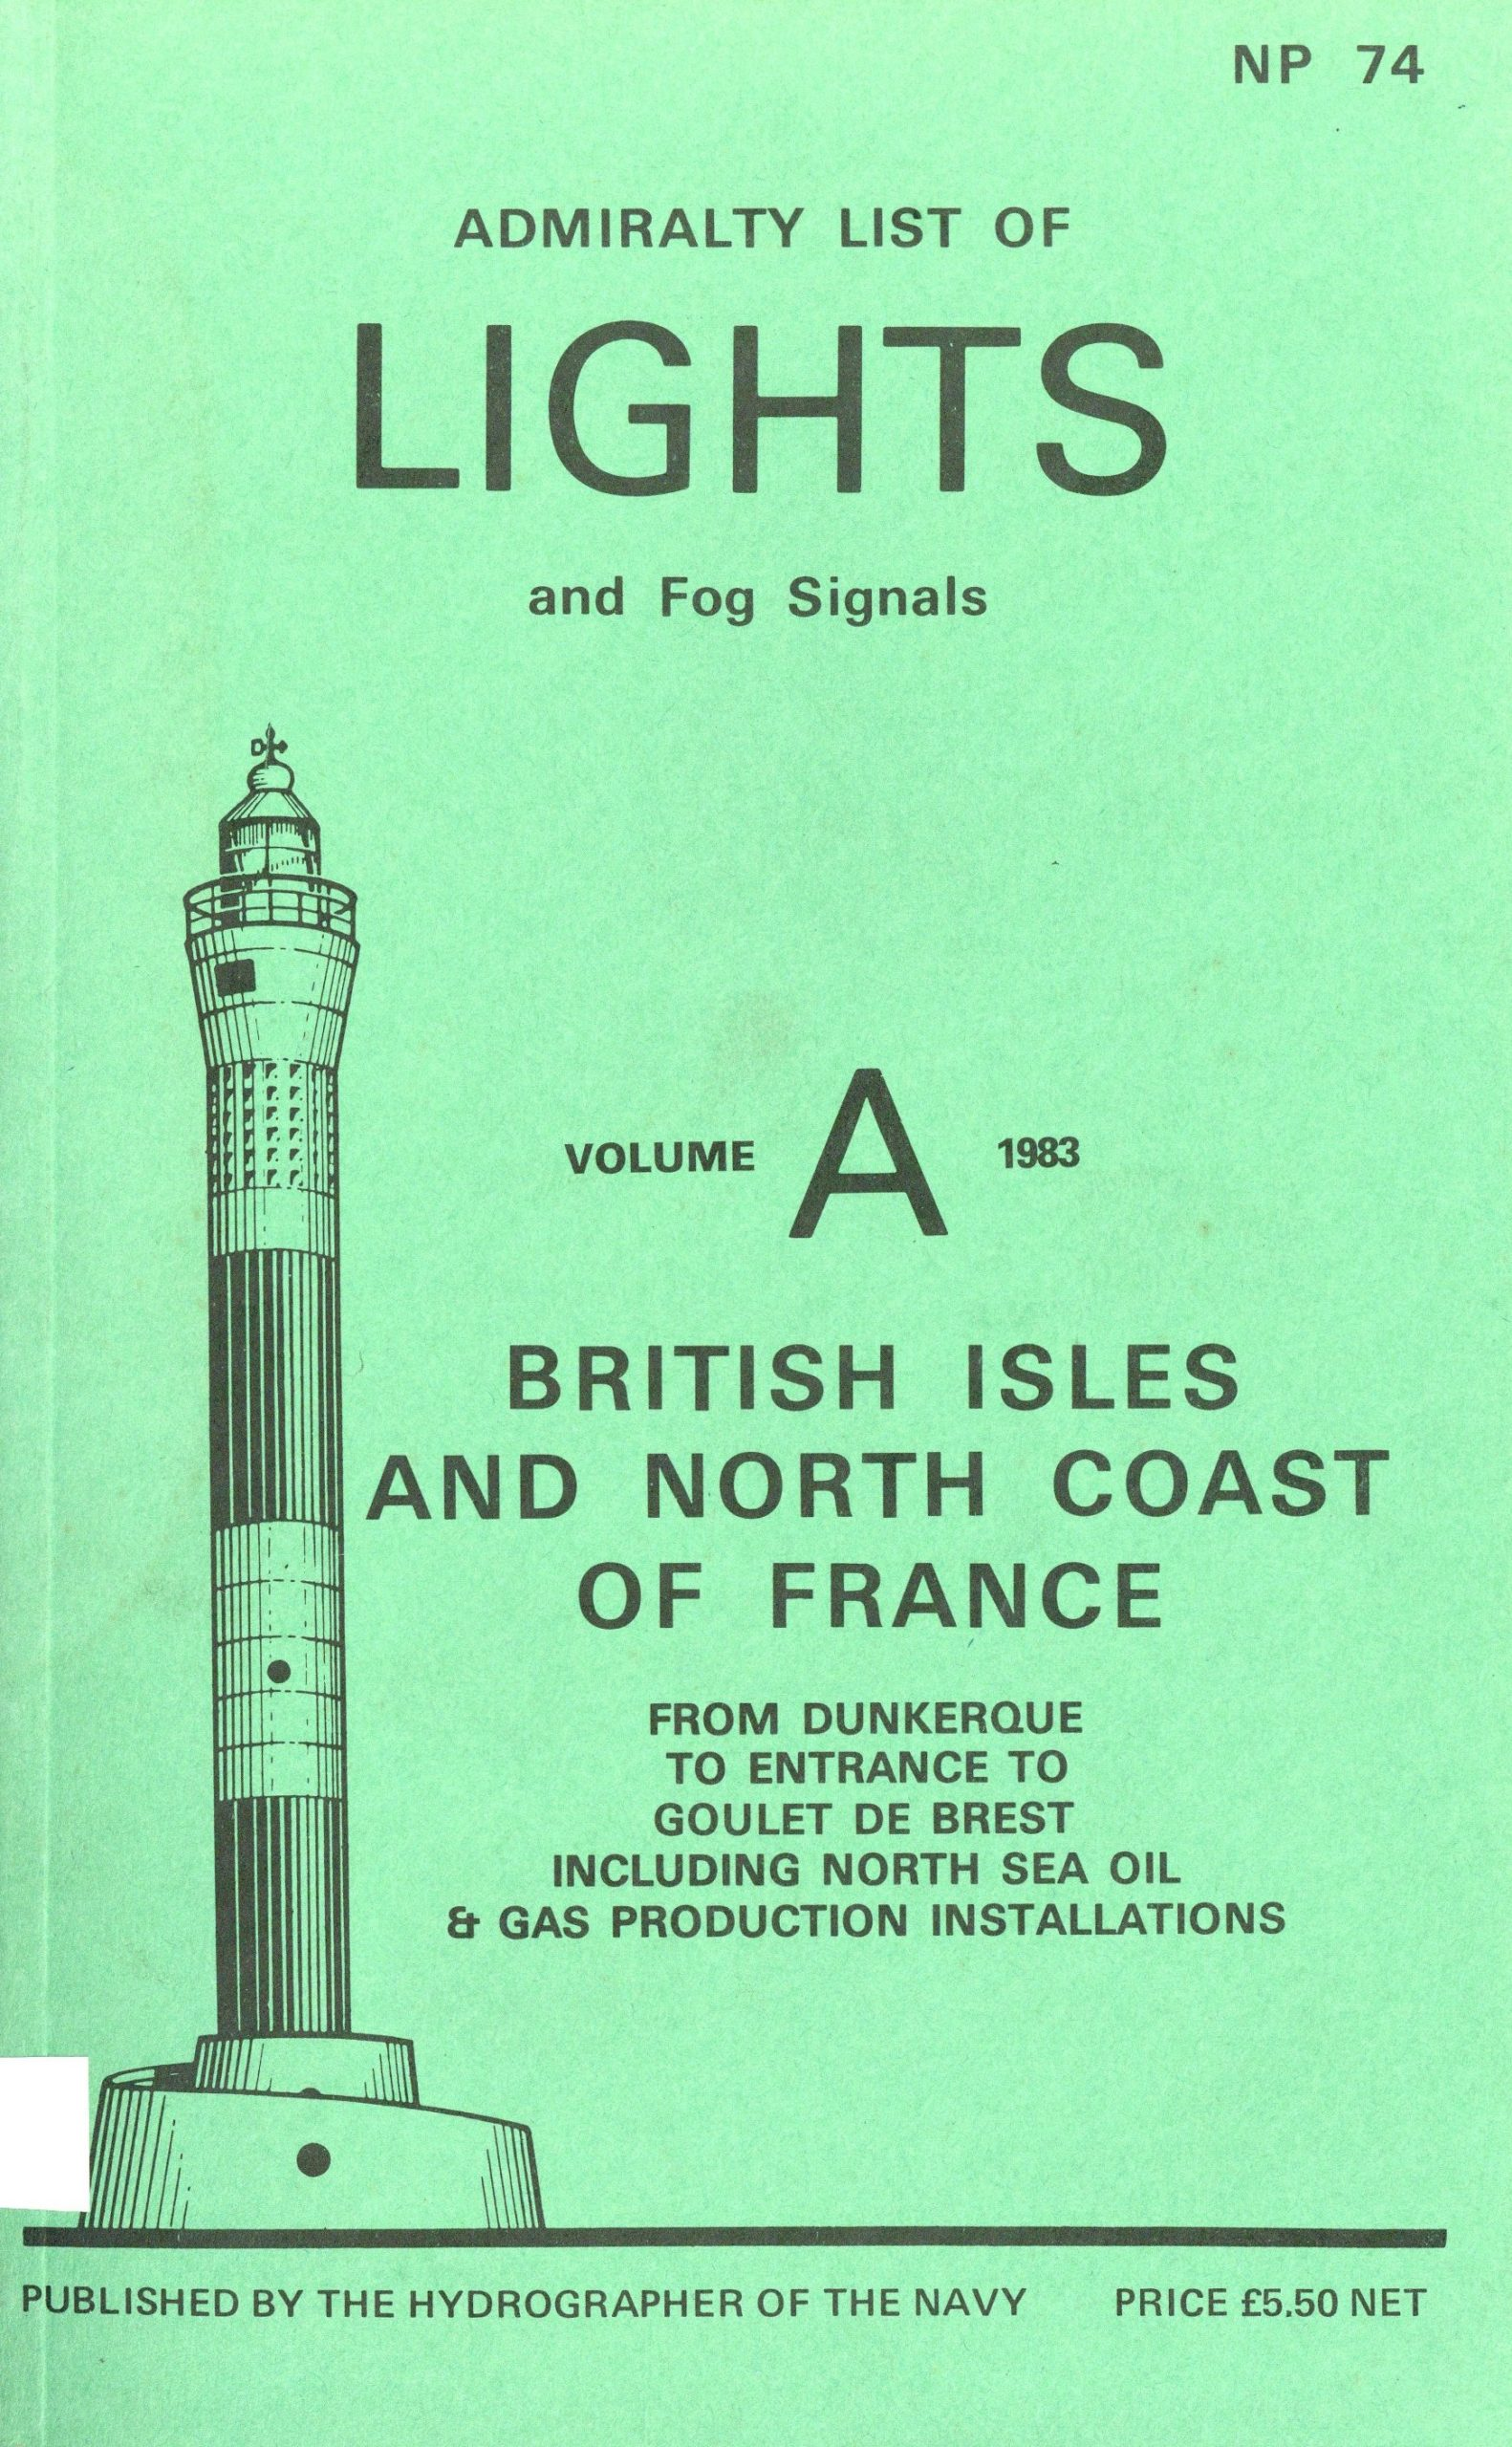 Admiralty list of lights and fog signals – vol. A – 1983